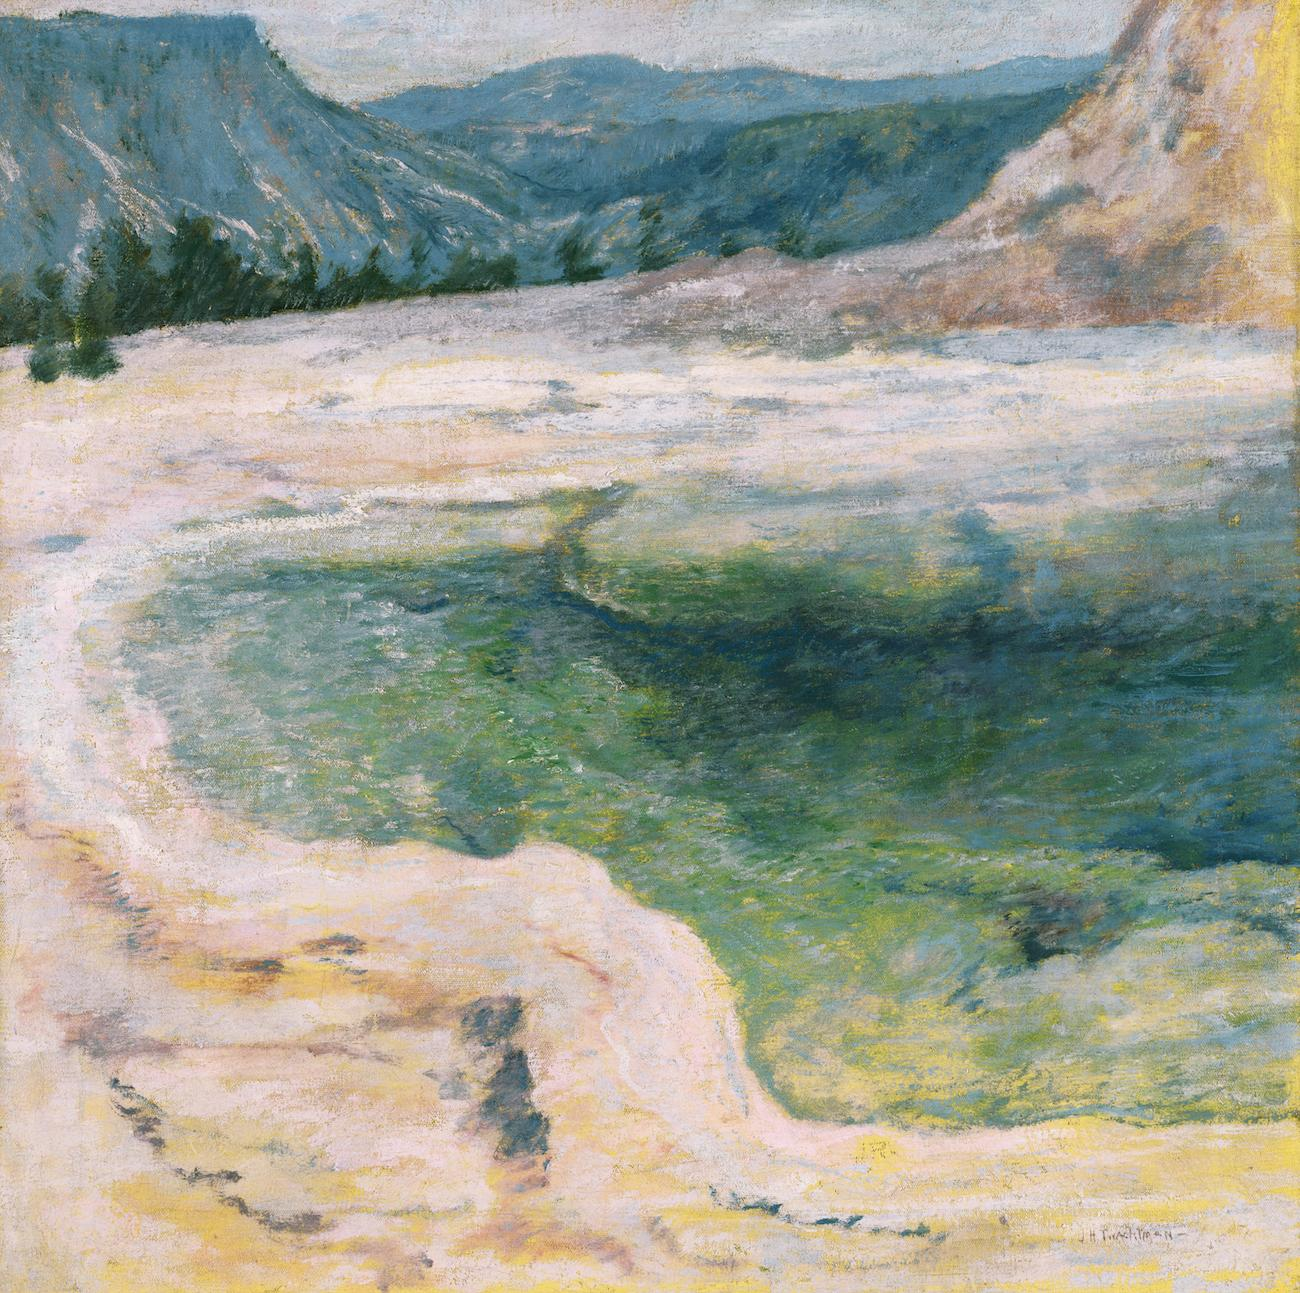 'The Emerald Pool' (ca. 1895) by John Henry Twachtman / Image courtesy of the Taft Museum of Art // Published: 5.1.19